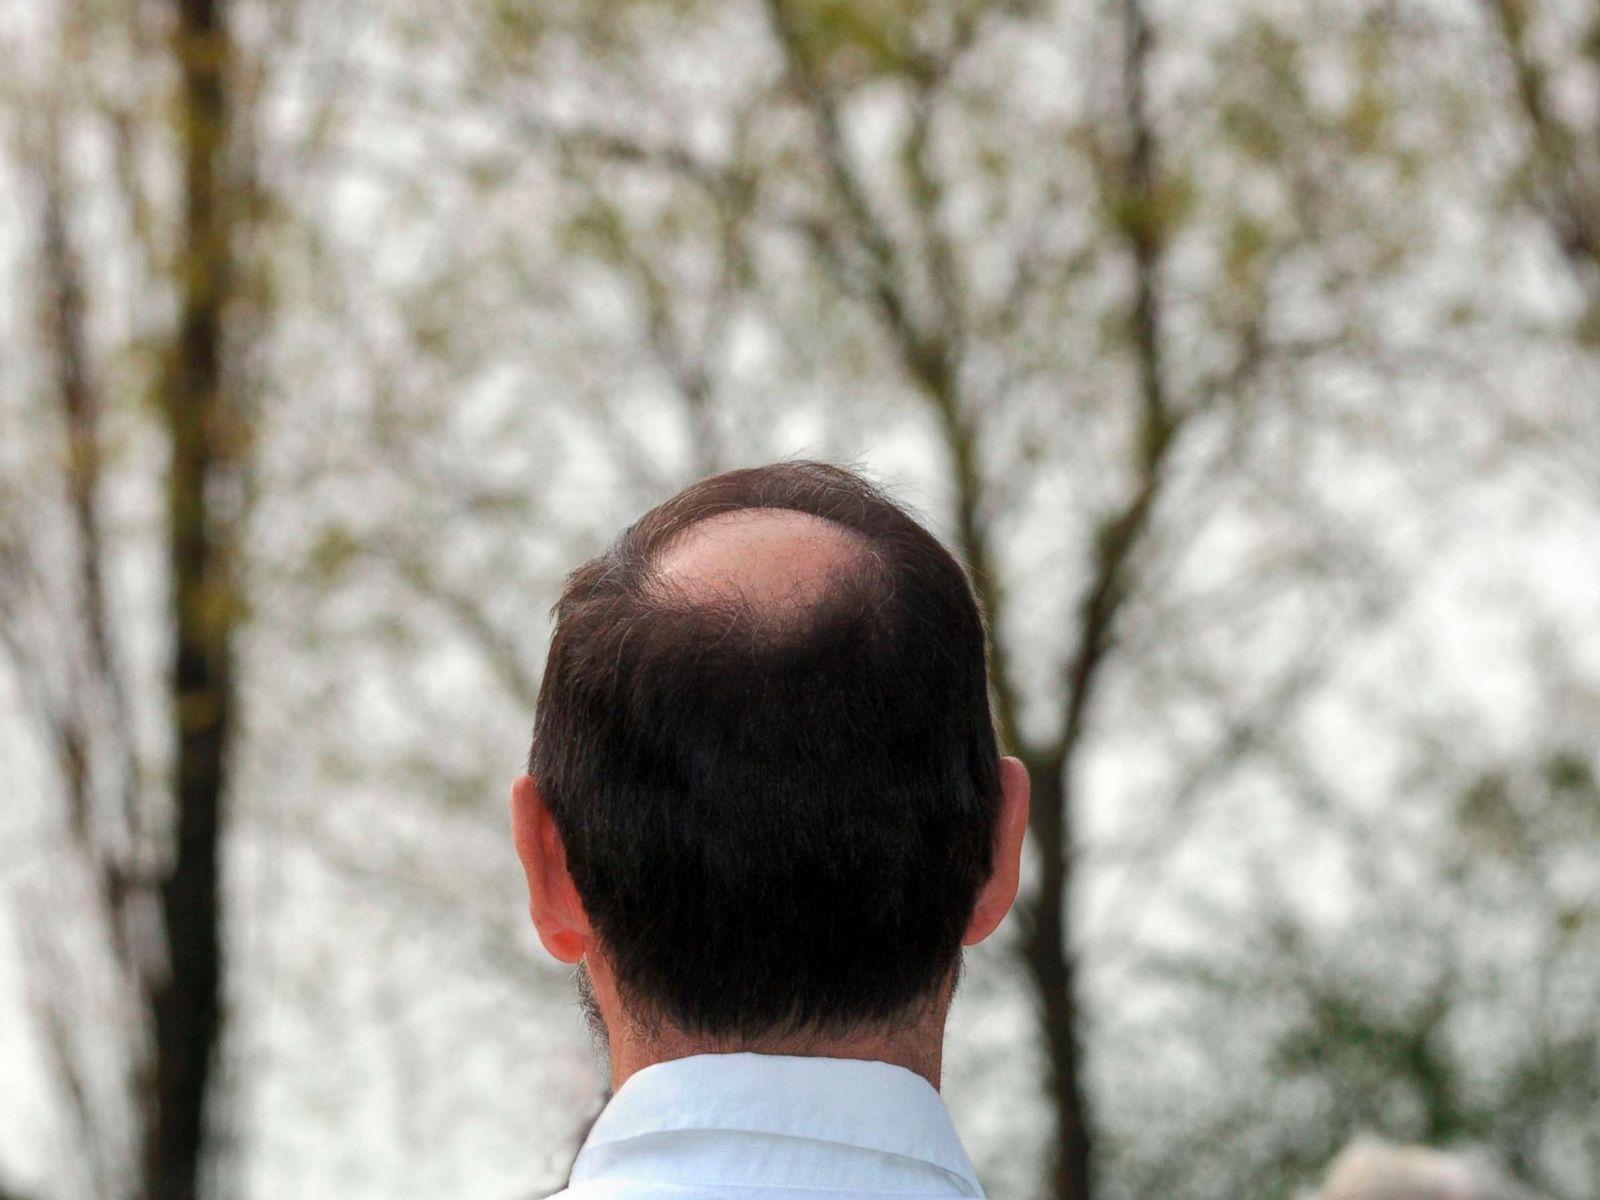 New drug for alopecia shows promise: What you need to know - ABC News